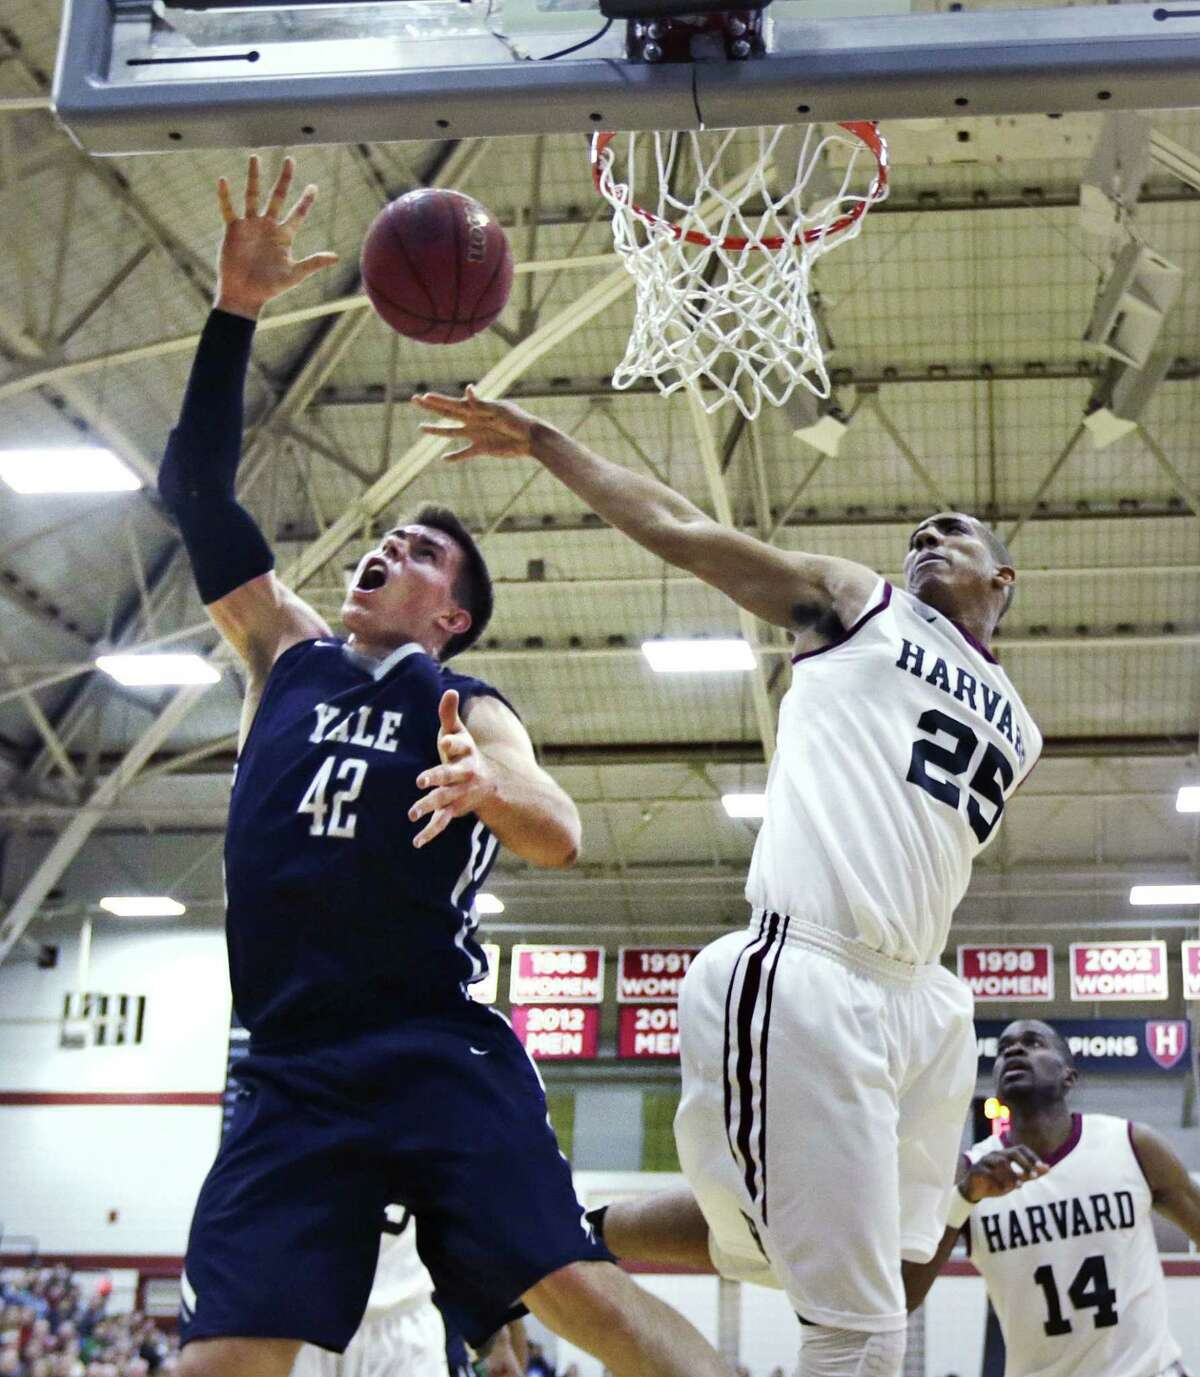 Harvard center Kenyatta Smith (25) blocks a shot by Yale's Matt Townsend during the first half of their game on March 6.